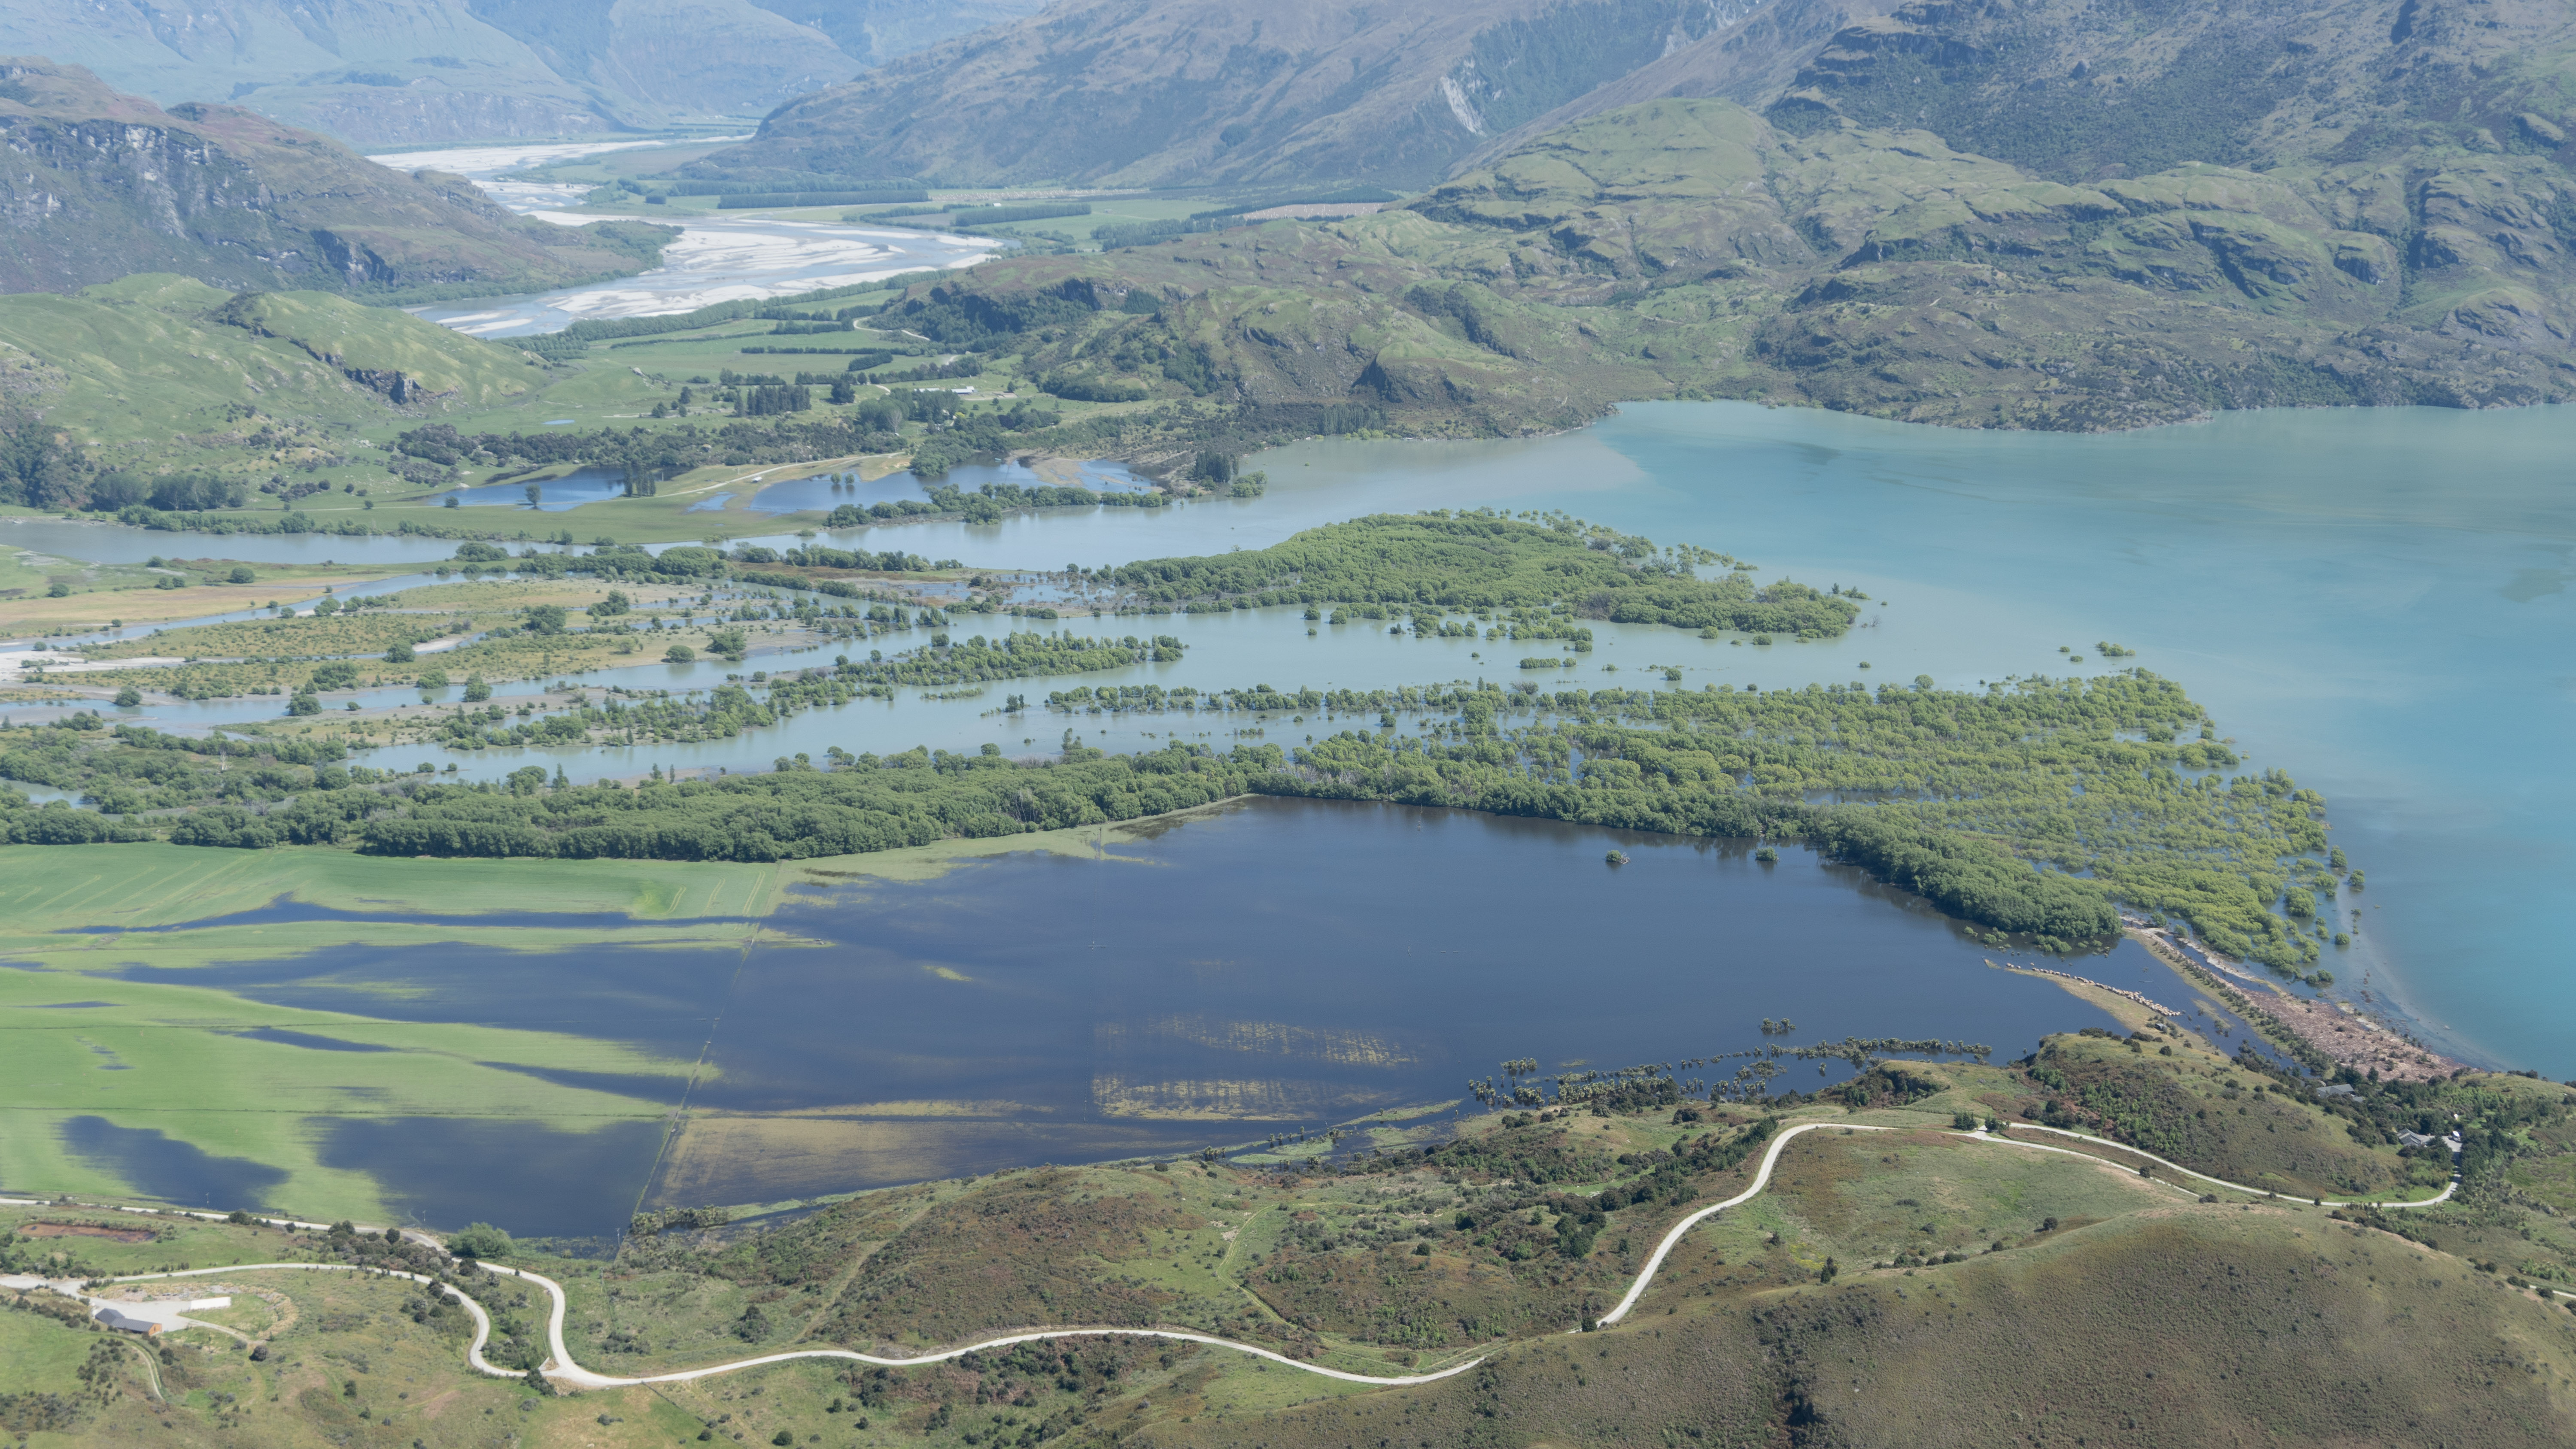 The inflow of the Matukituki River to Lake Wanaka, photographed by ORC staff around midday yesterday.